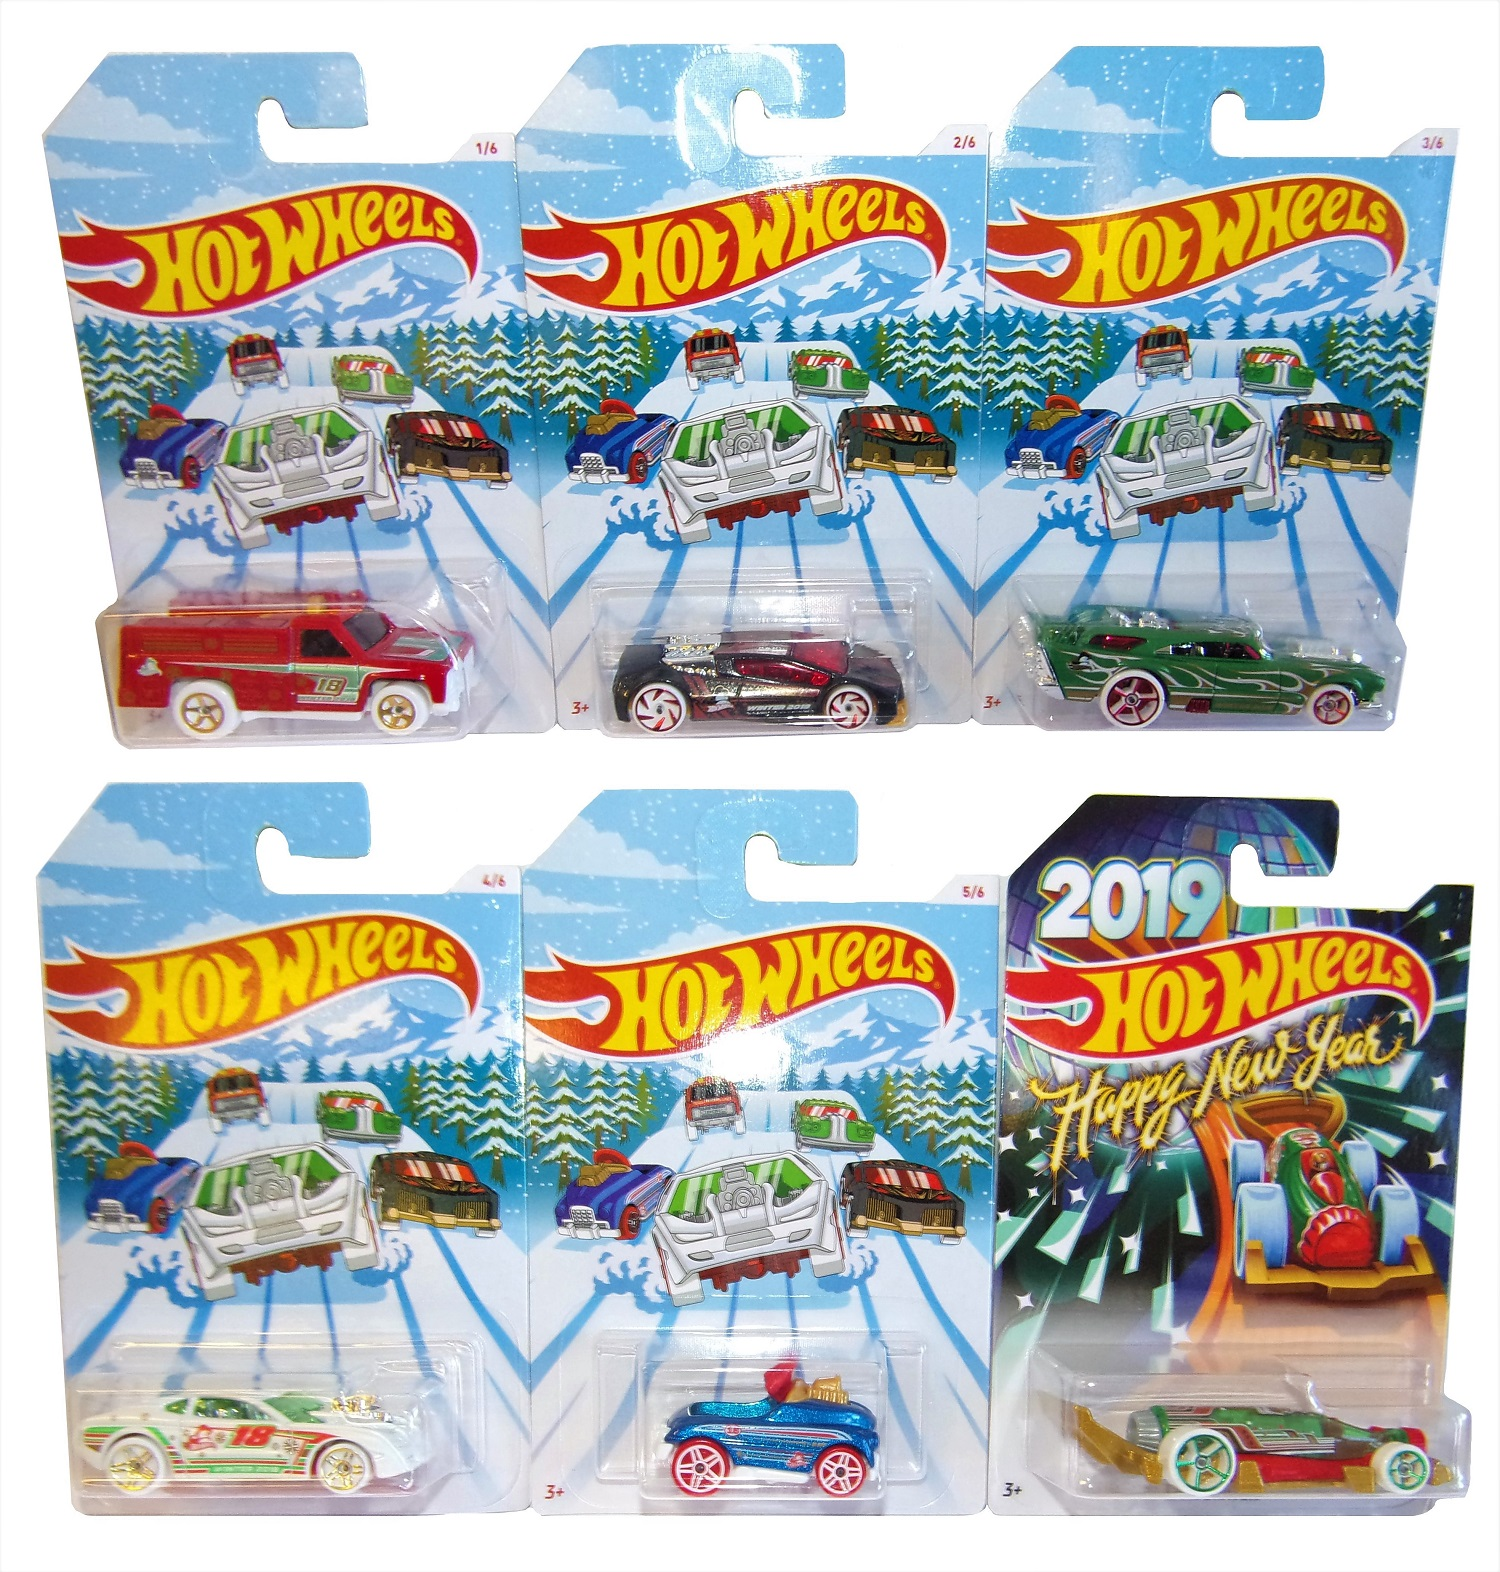 Hot Wheels Holiday Hot Rood 6er Pack Modell-Autos